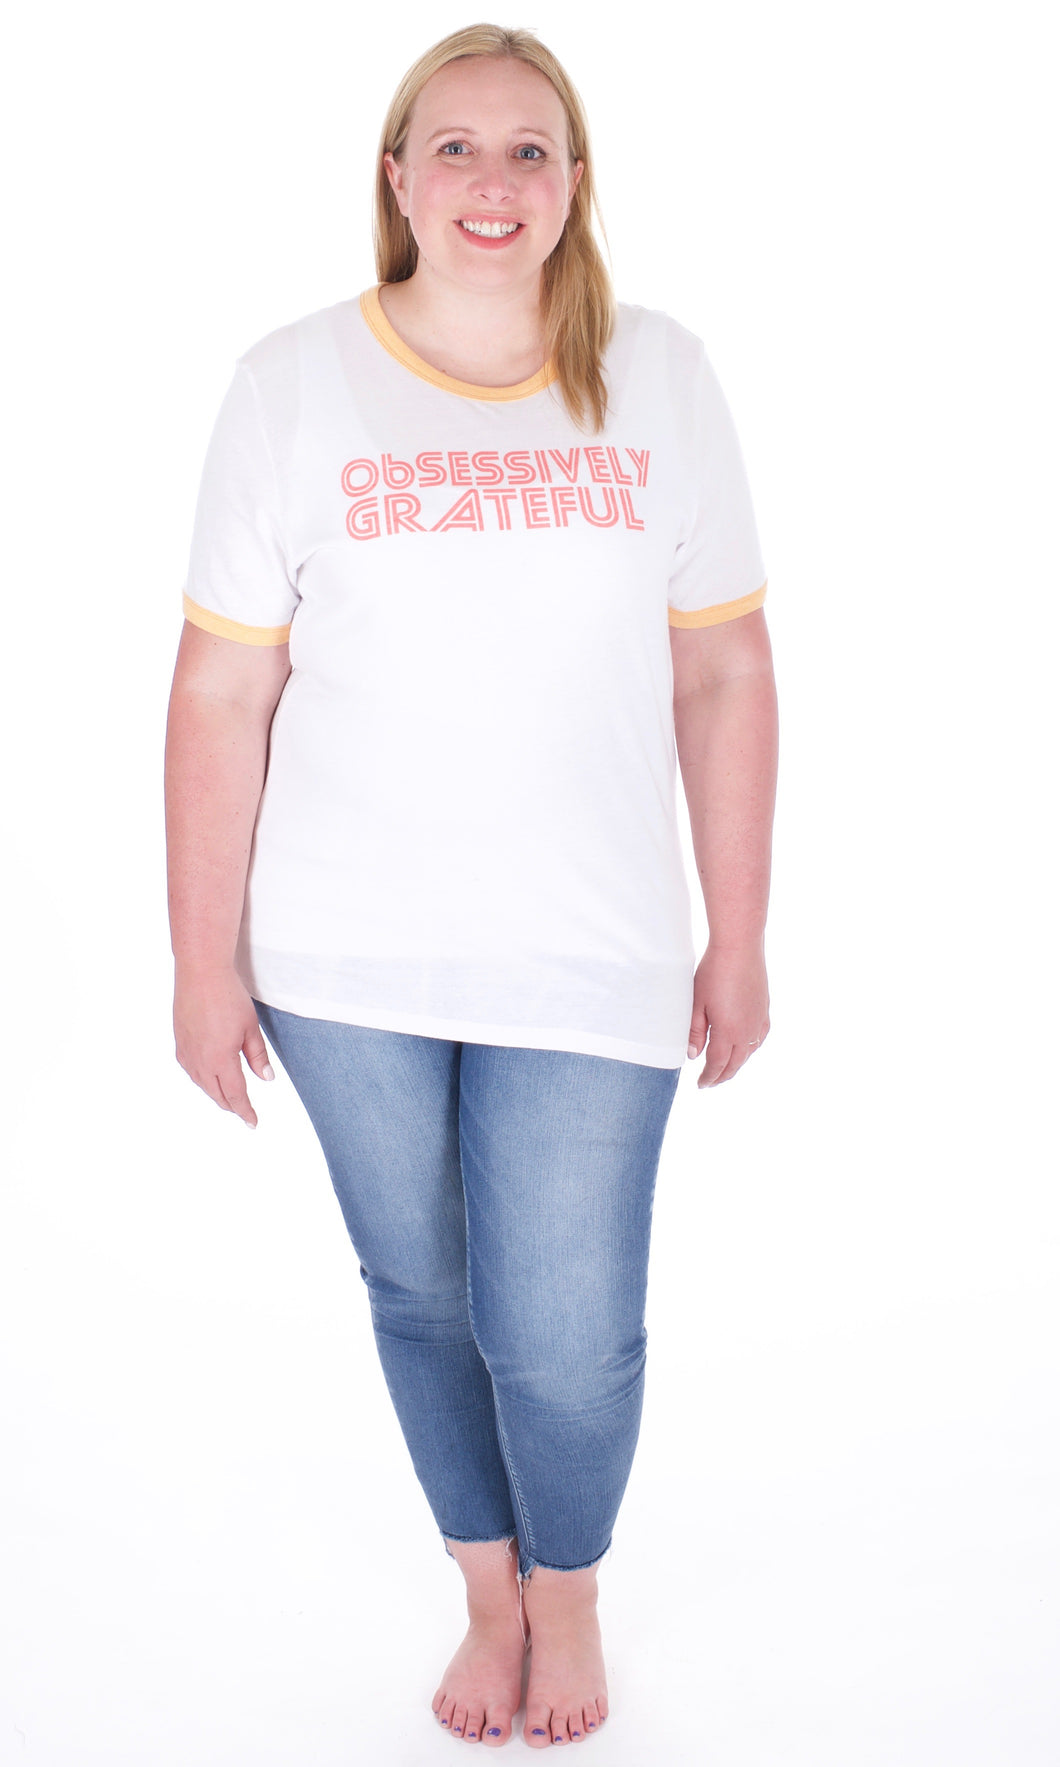 Obsessively Grateful Graphic Tee - Adventurista Boutique